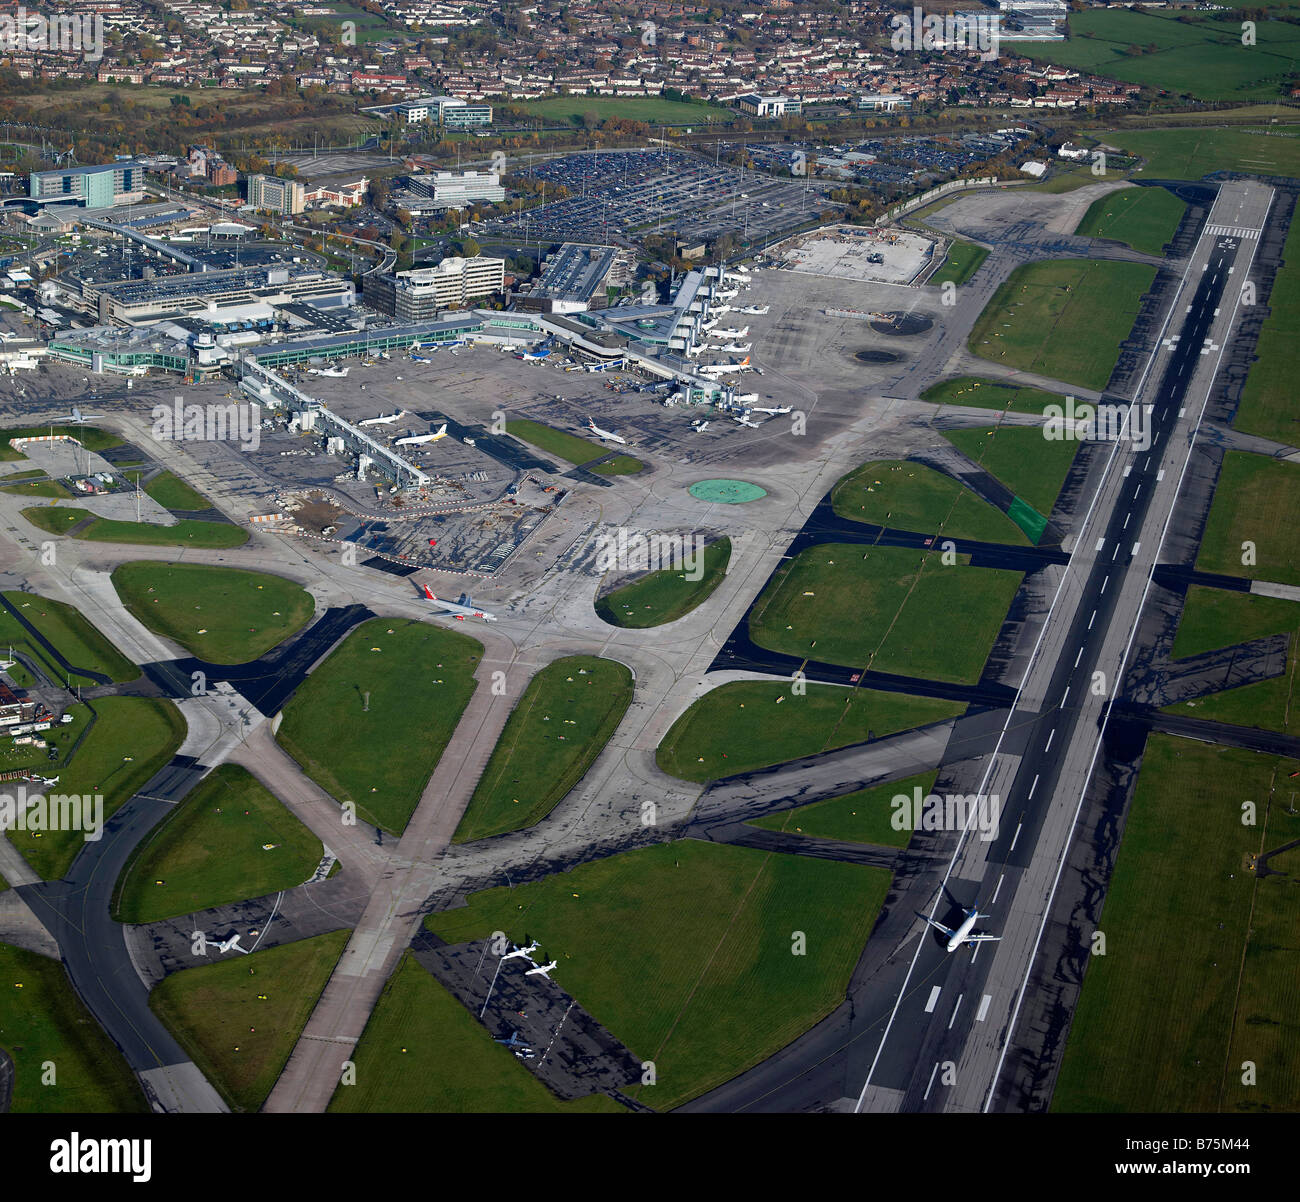 Manchester Boston Regional Airport Mht: Manchester Airport From The Air, Northern England Stock